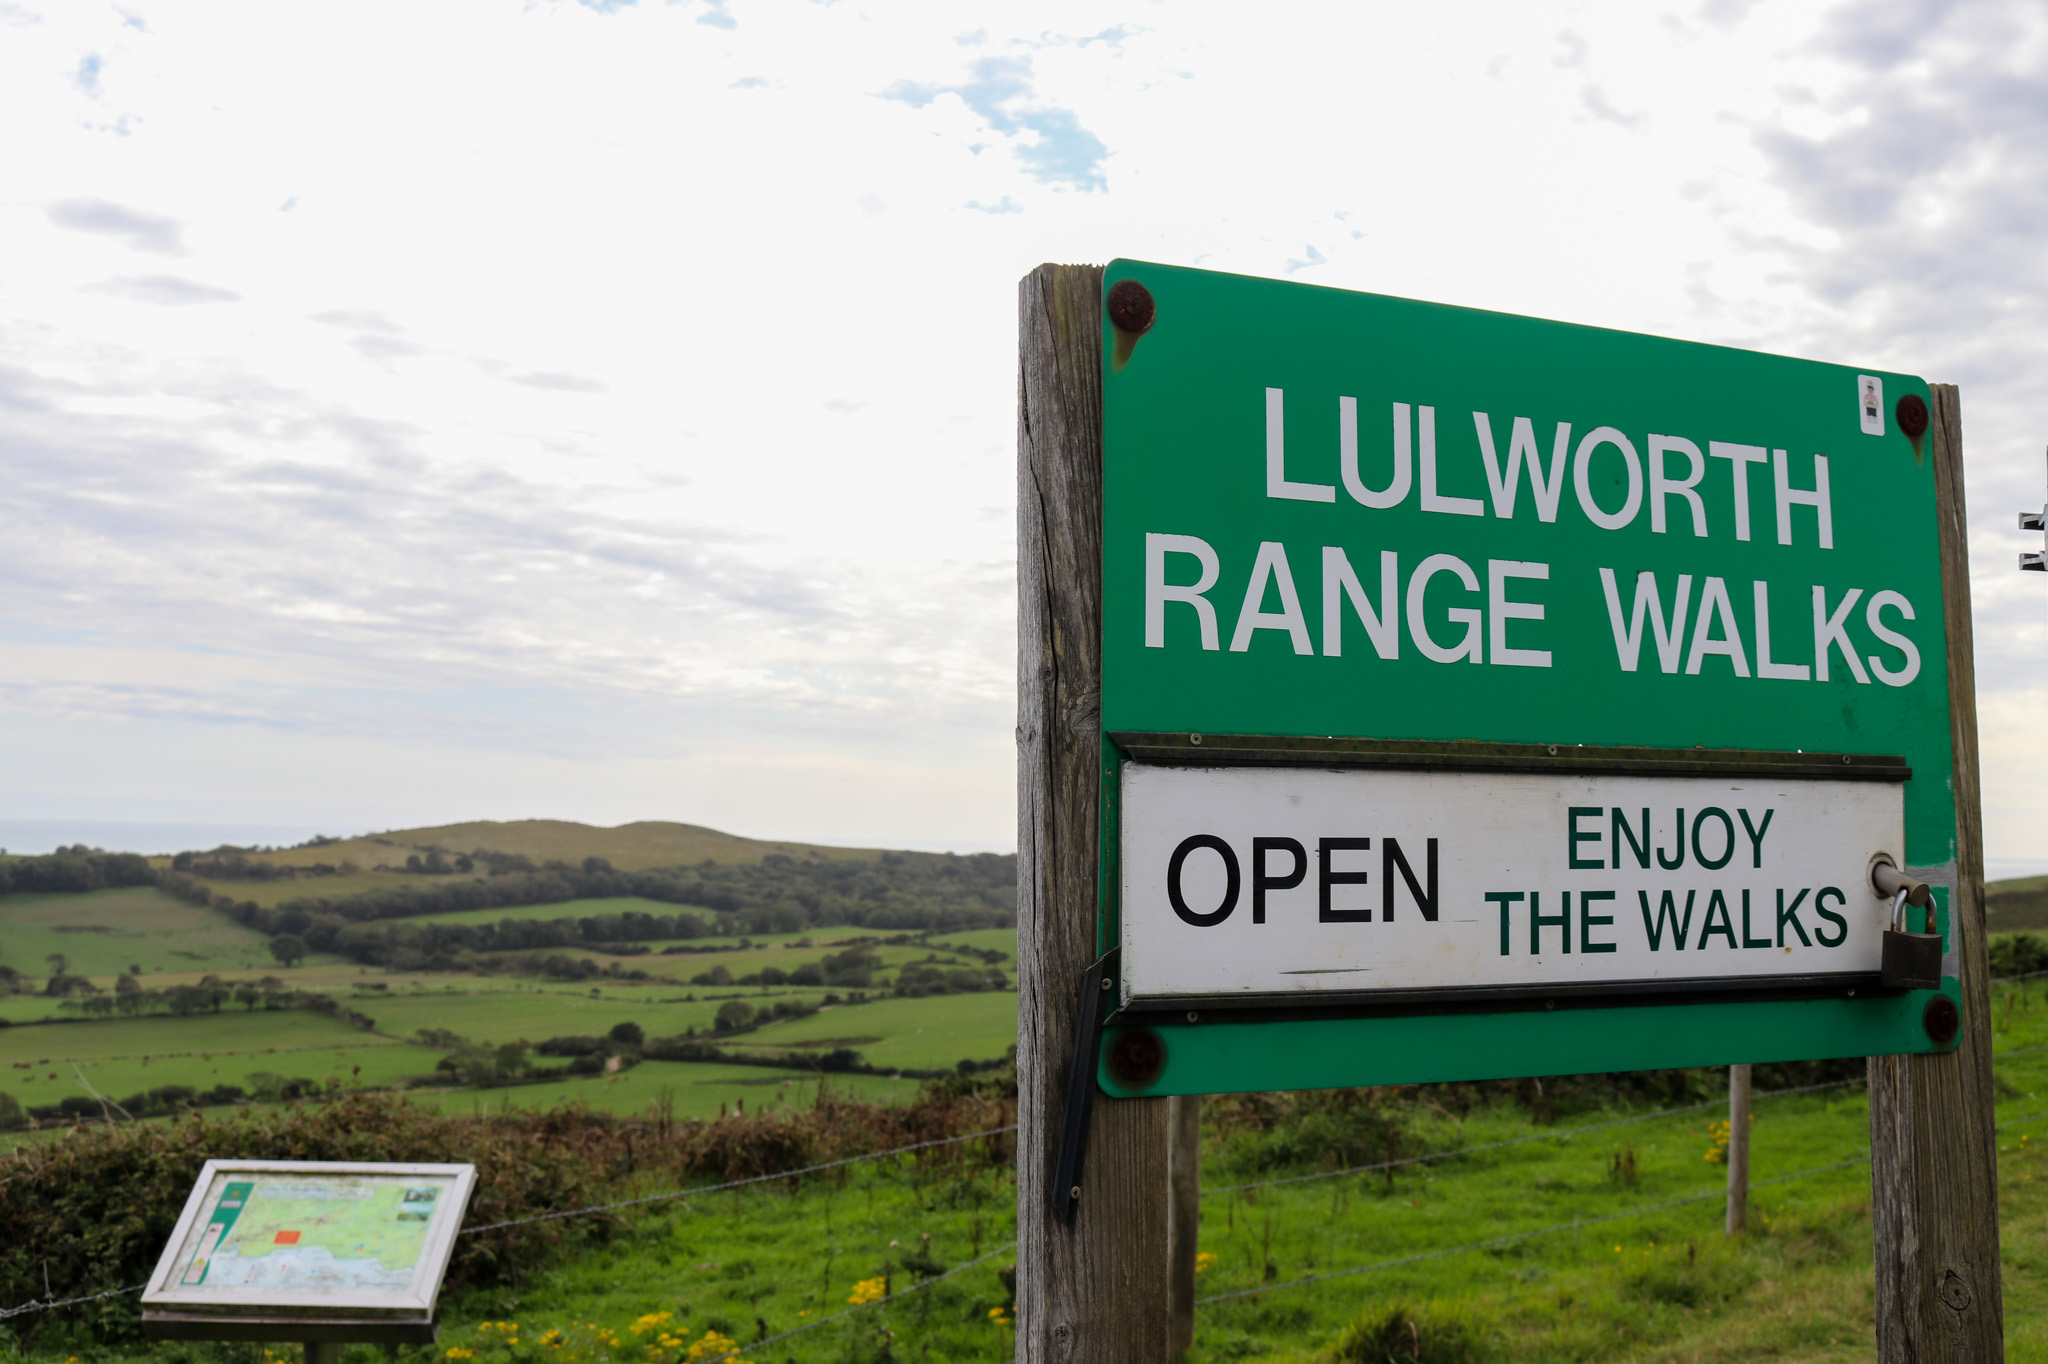 Lulworth Range walks sign with Purbeck hills in distance